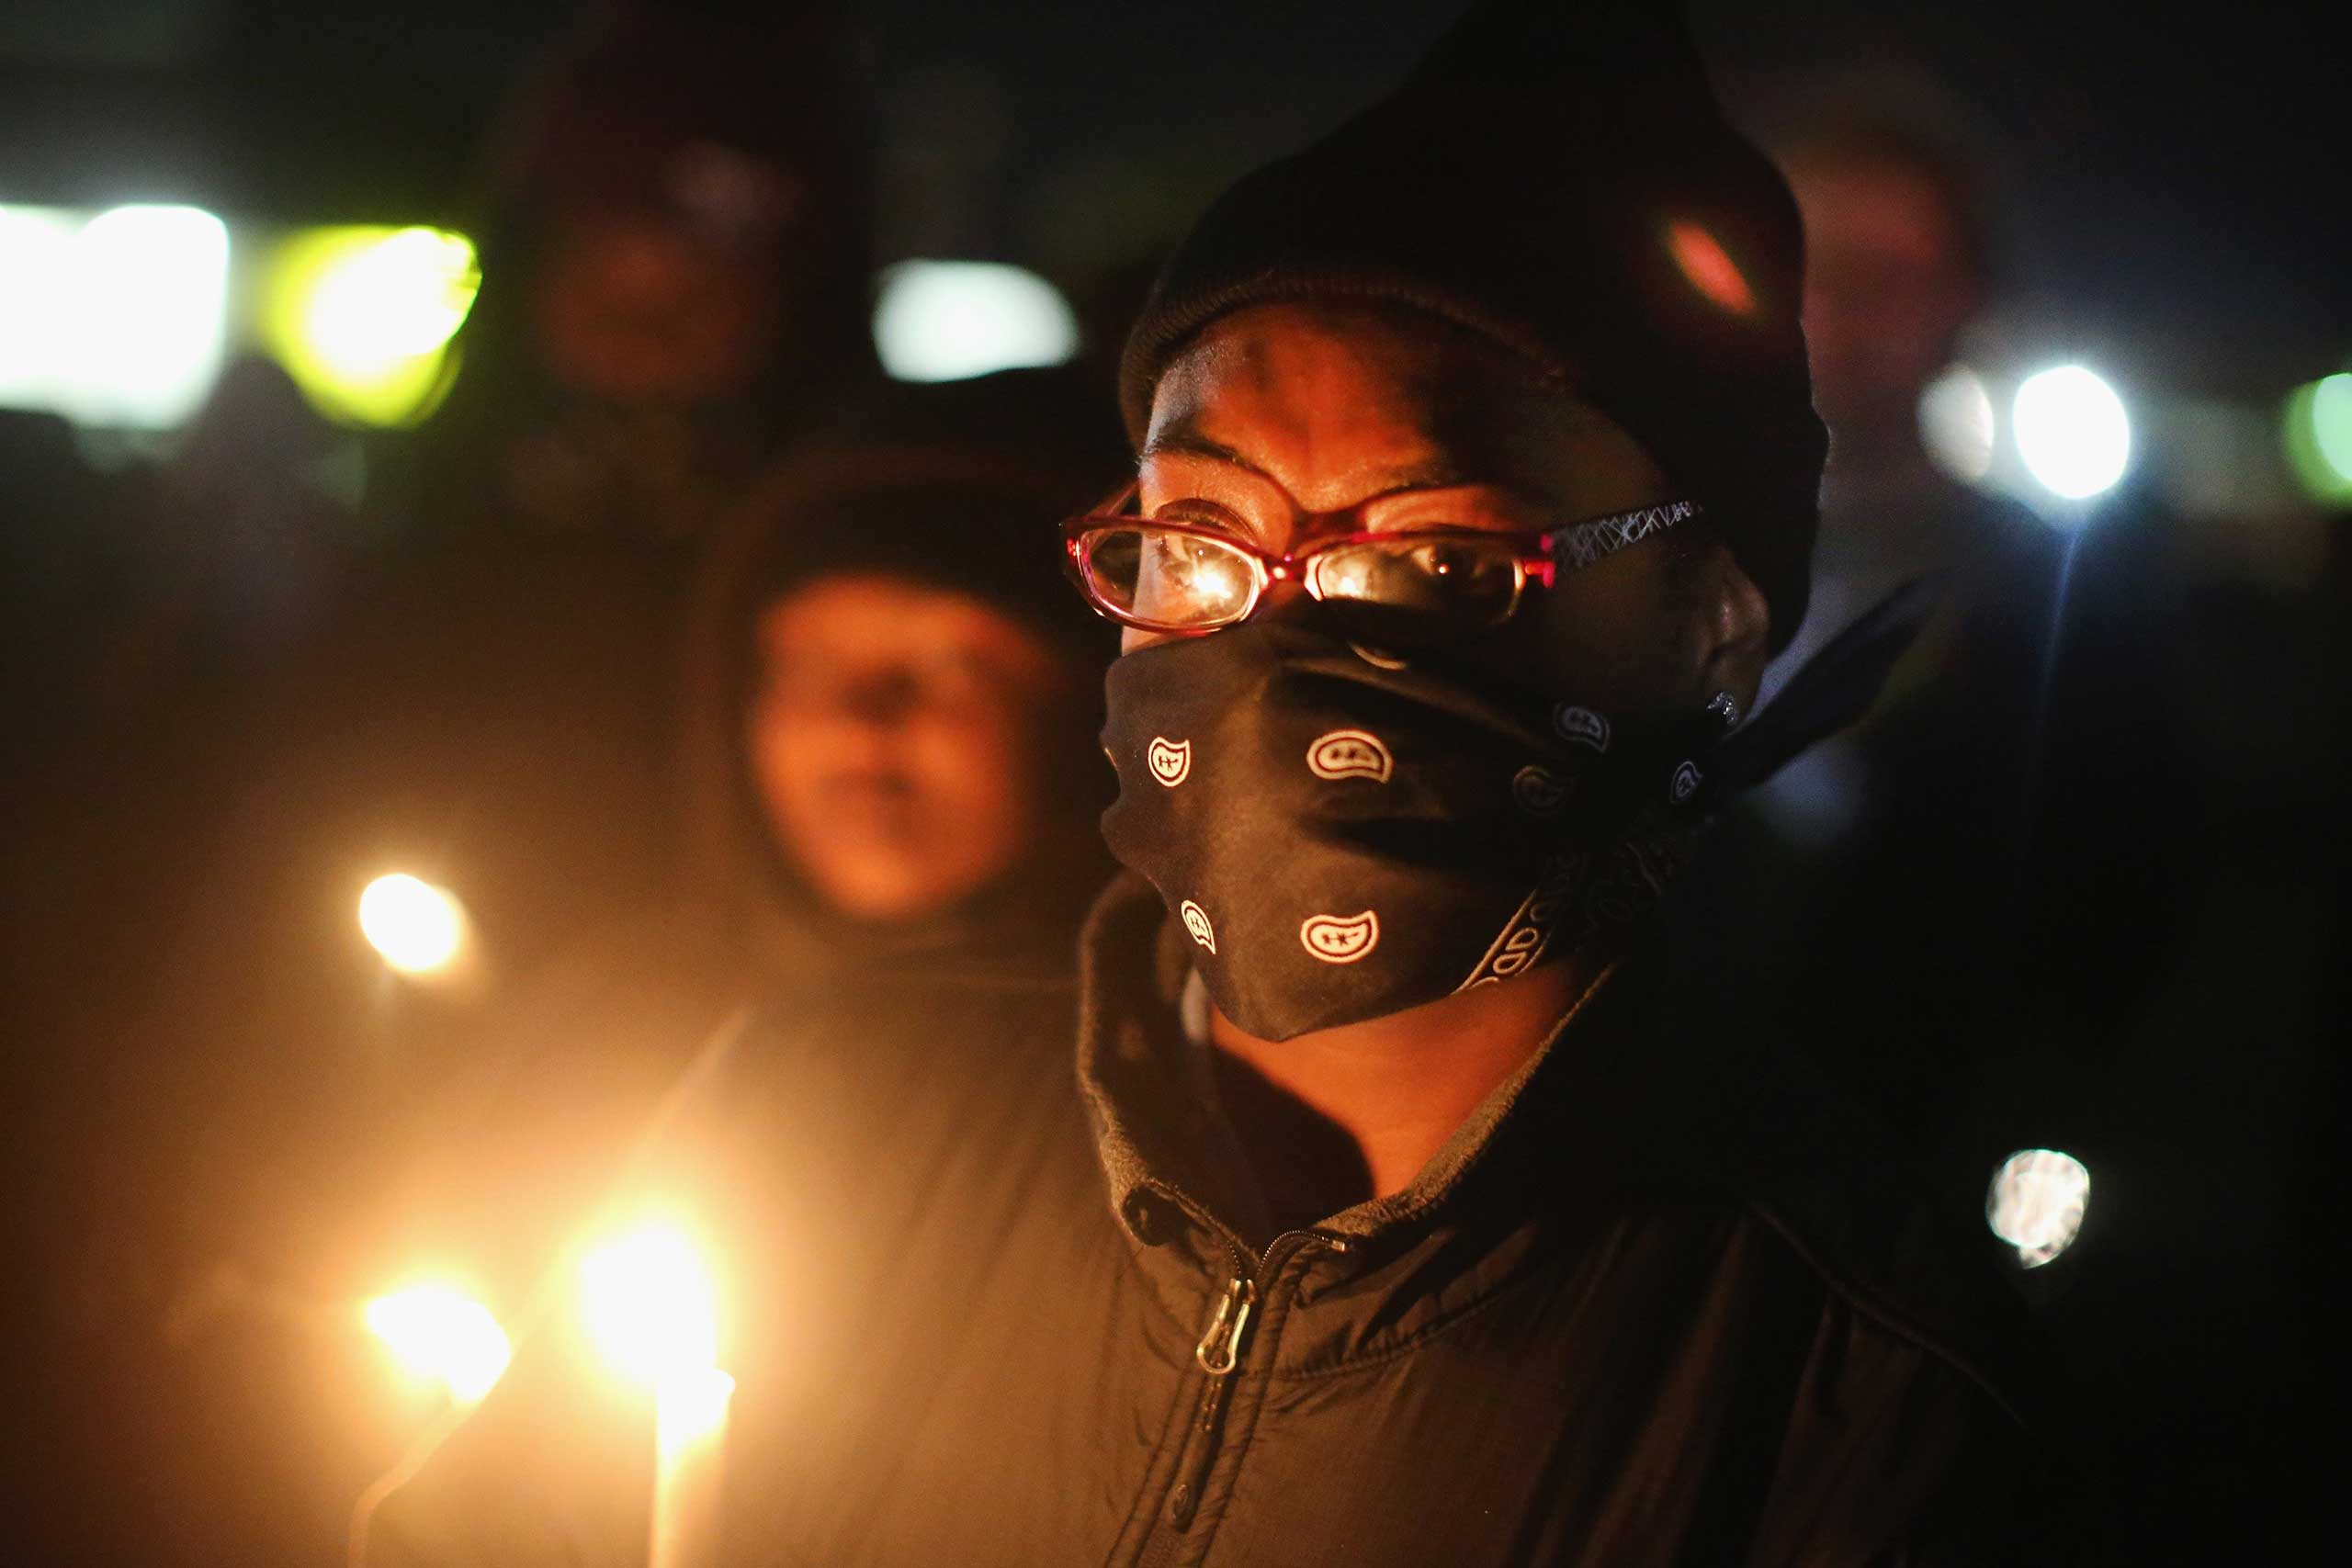 Demonstrators hold a candlelight vigil in memory of Michael Brown and other young minorities killed by gunfire, in Ferguson, Mo. on Oct. 10, 2014.